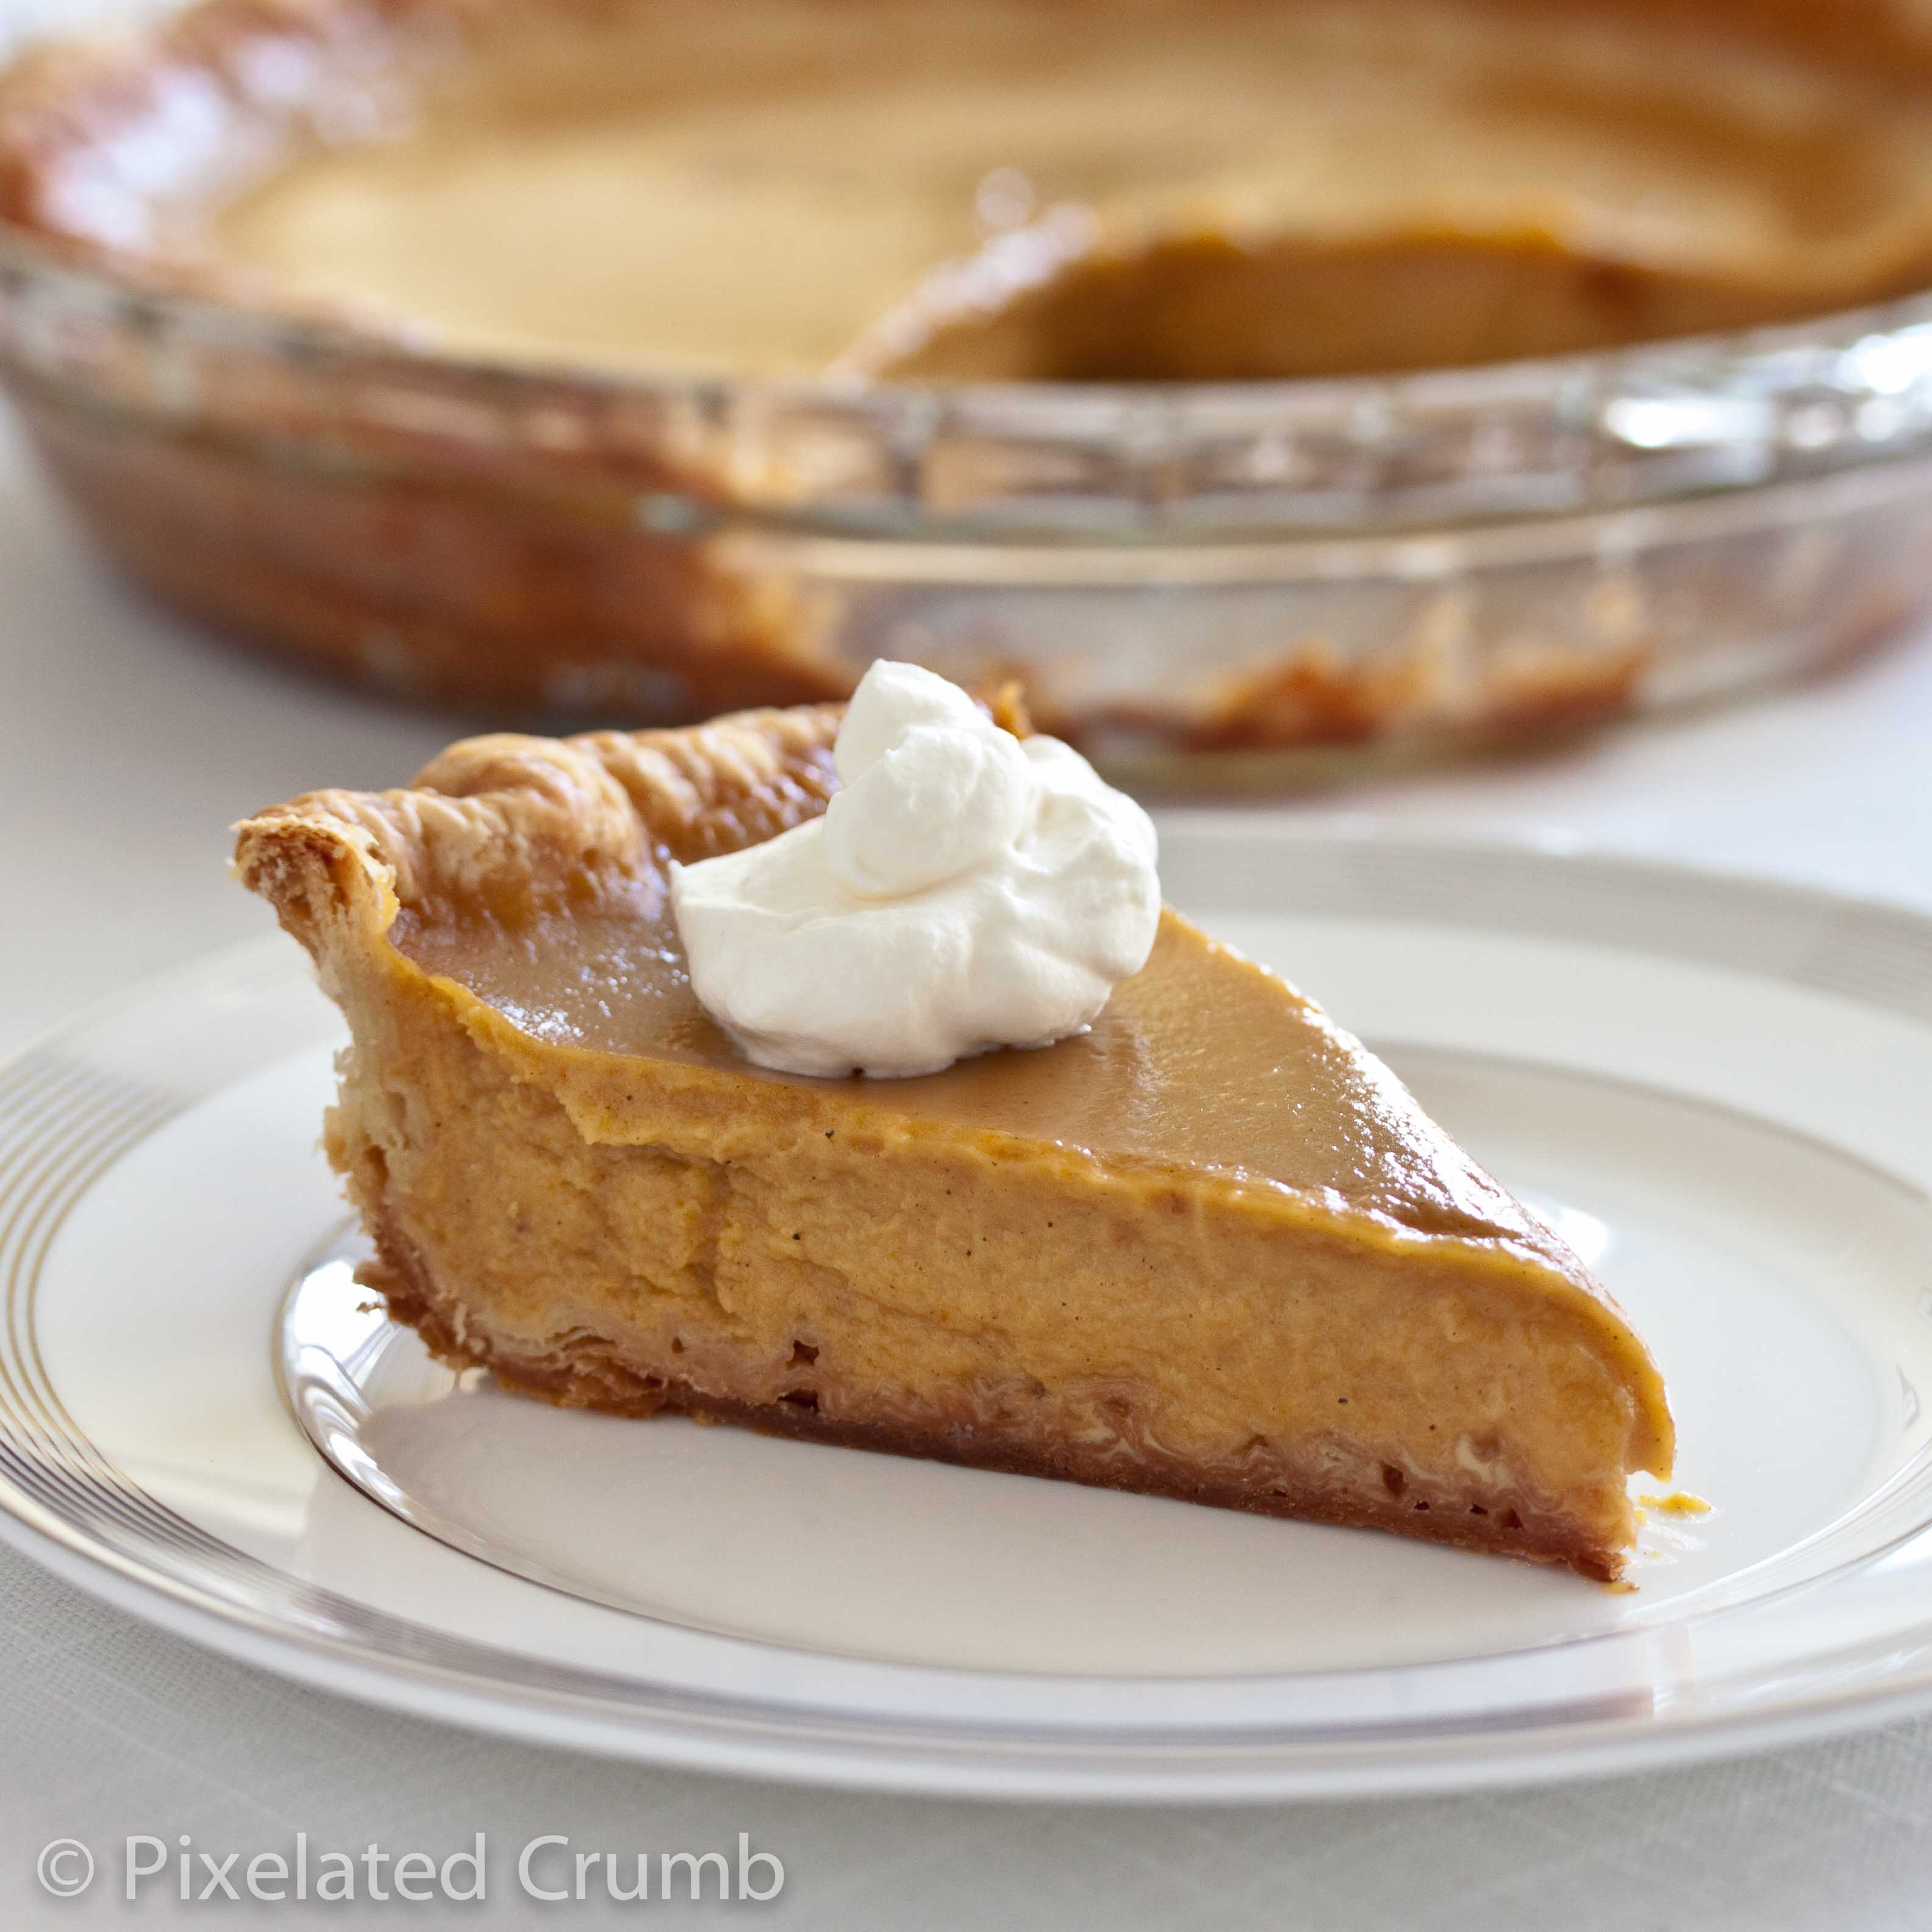 The Ultimate Pumpkin Pie | Pixelated Crumb